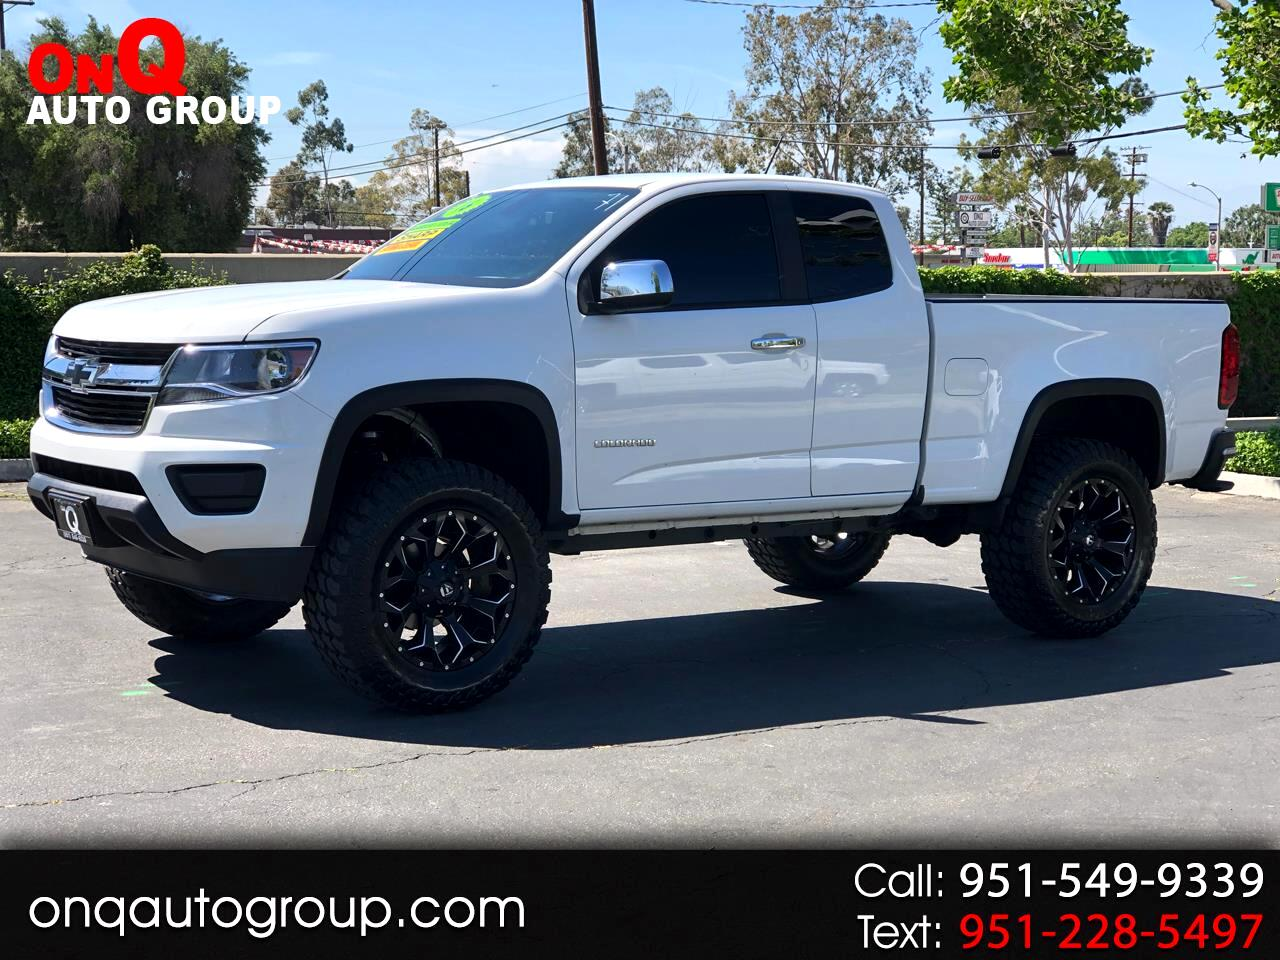 2016 Chevrolet Colorado 2WD Ext Cab LT w/1LT